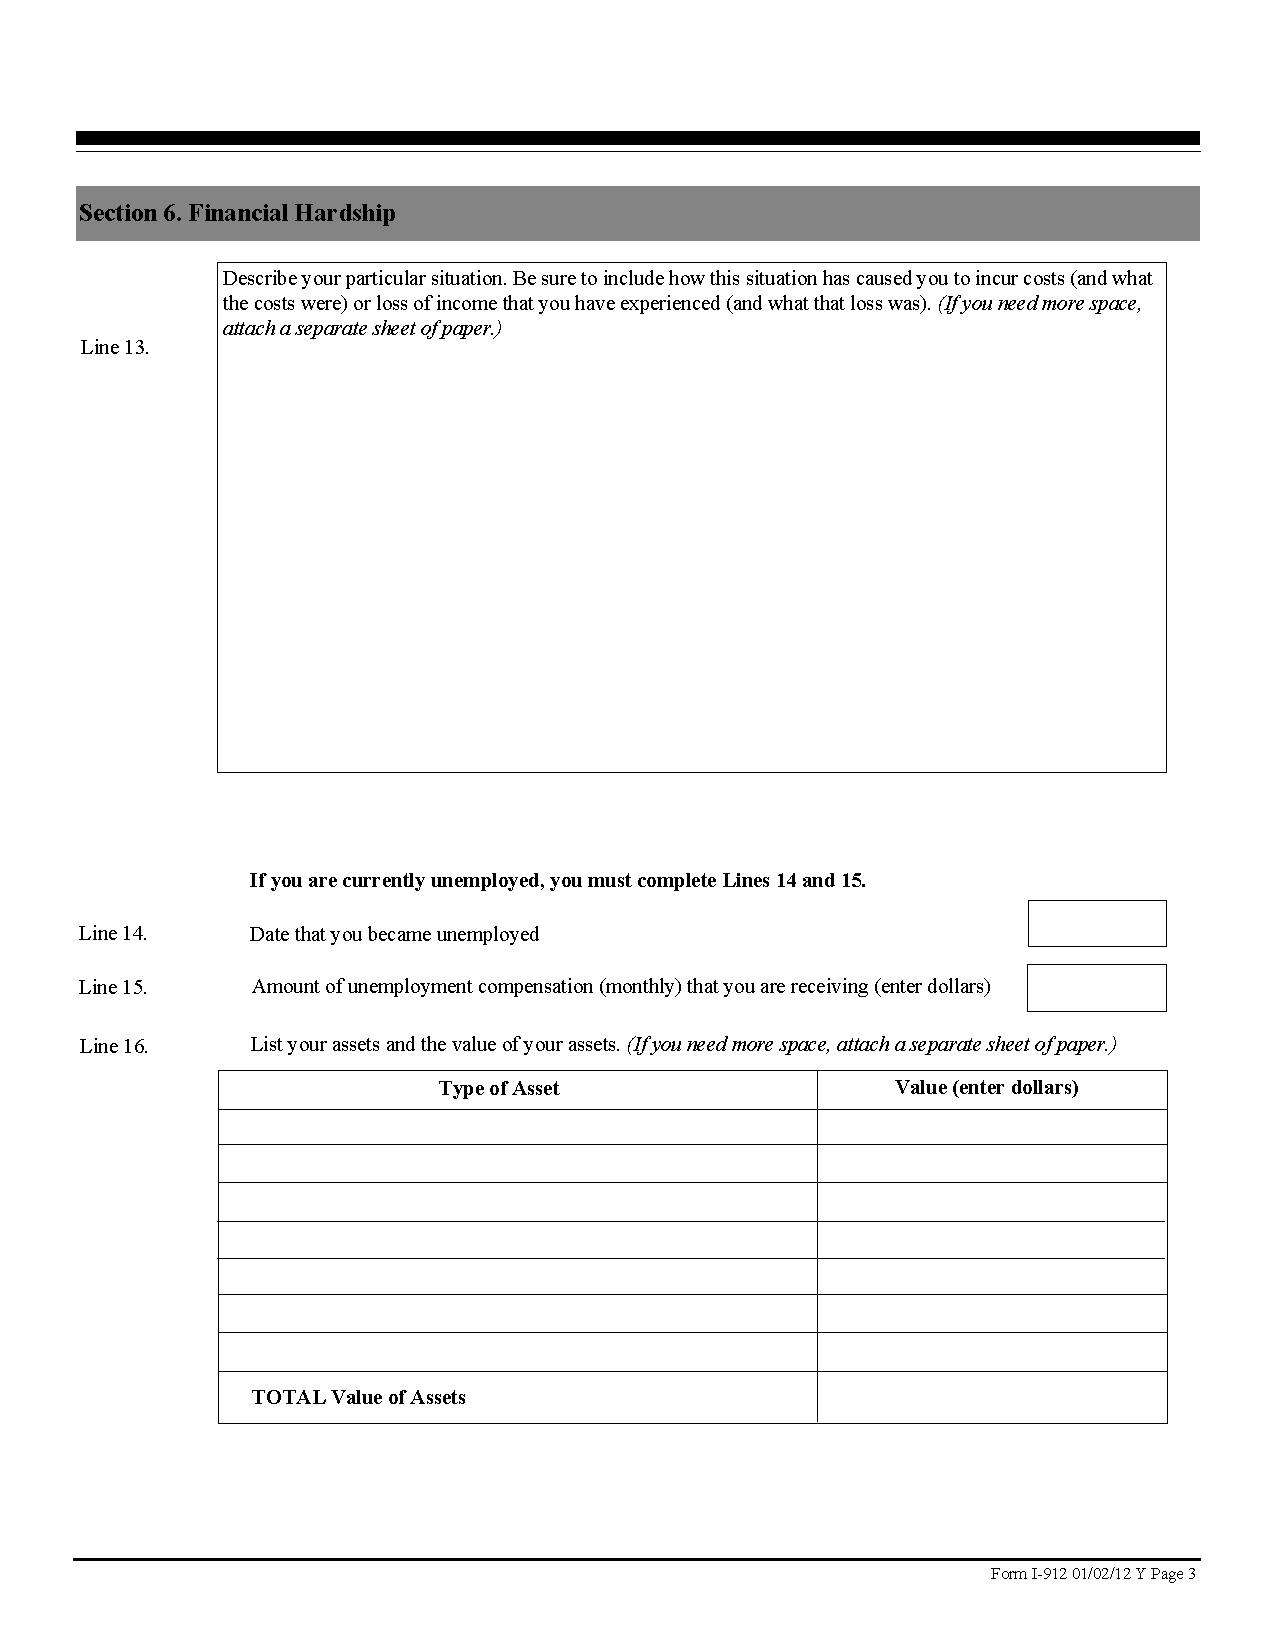 Form I-912 Request for Fee Waiver